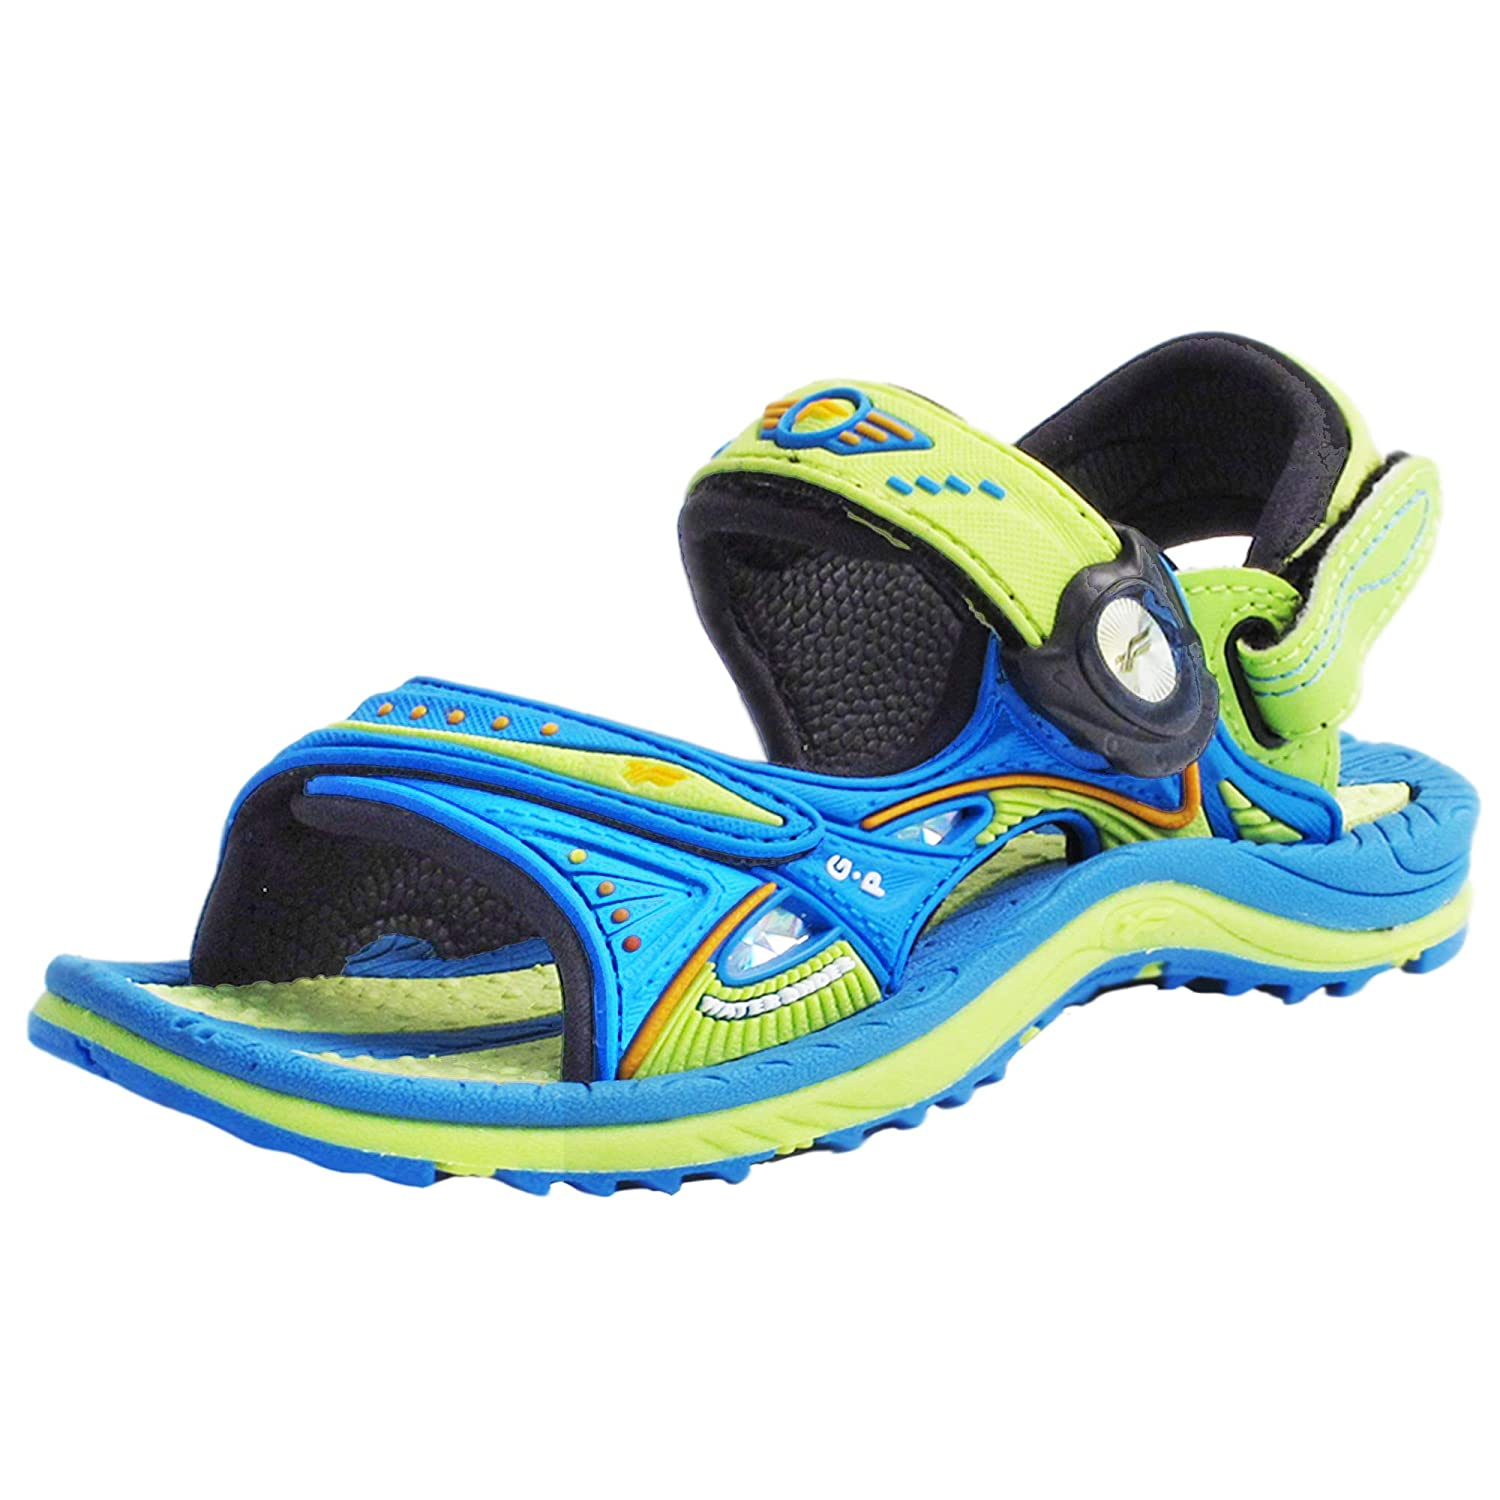 Gold Pigeon Shoes Kids Signature Light Weight Waterproof Sandals for Girls /& Boys